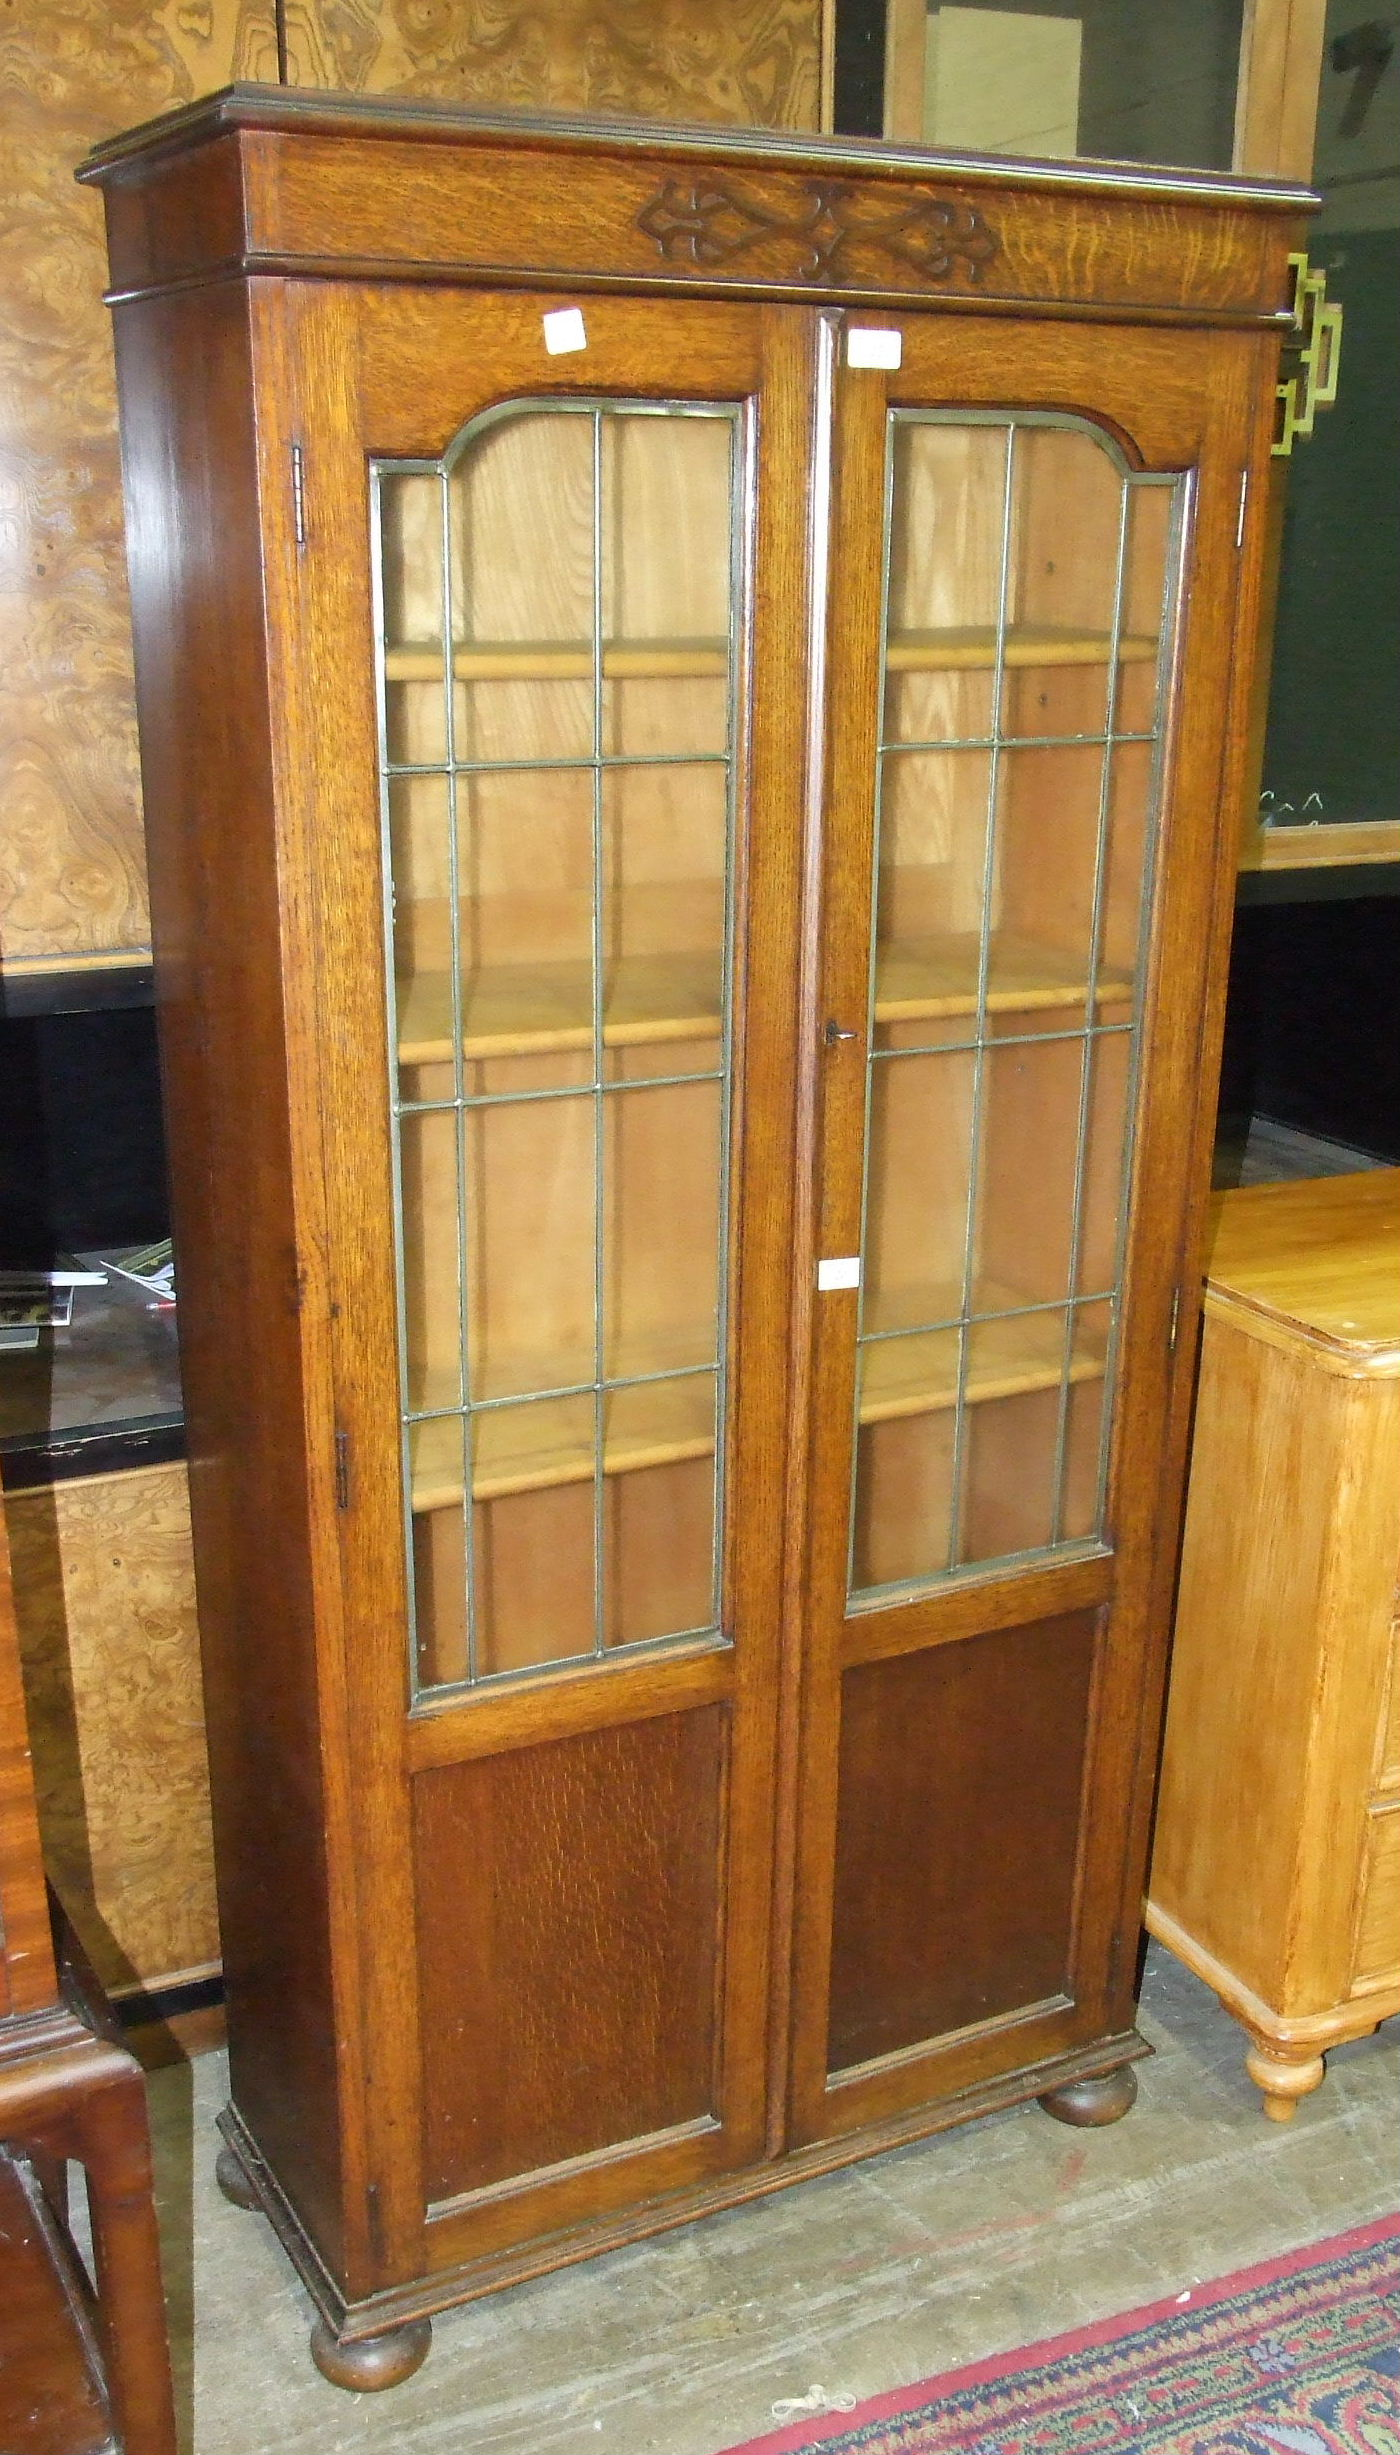 Lot 20 - An oak bookcase fitted with a pair of leaded-light doors, 76cm wide, 159cm high.